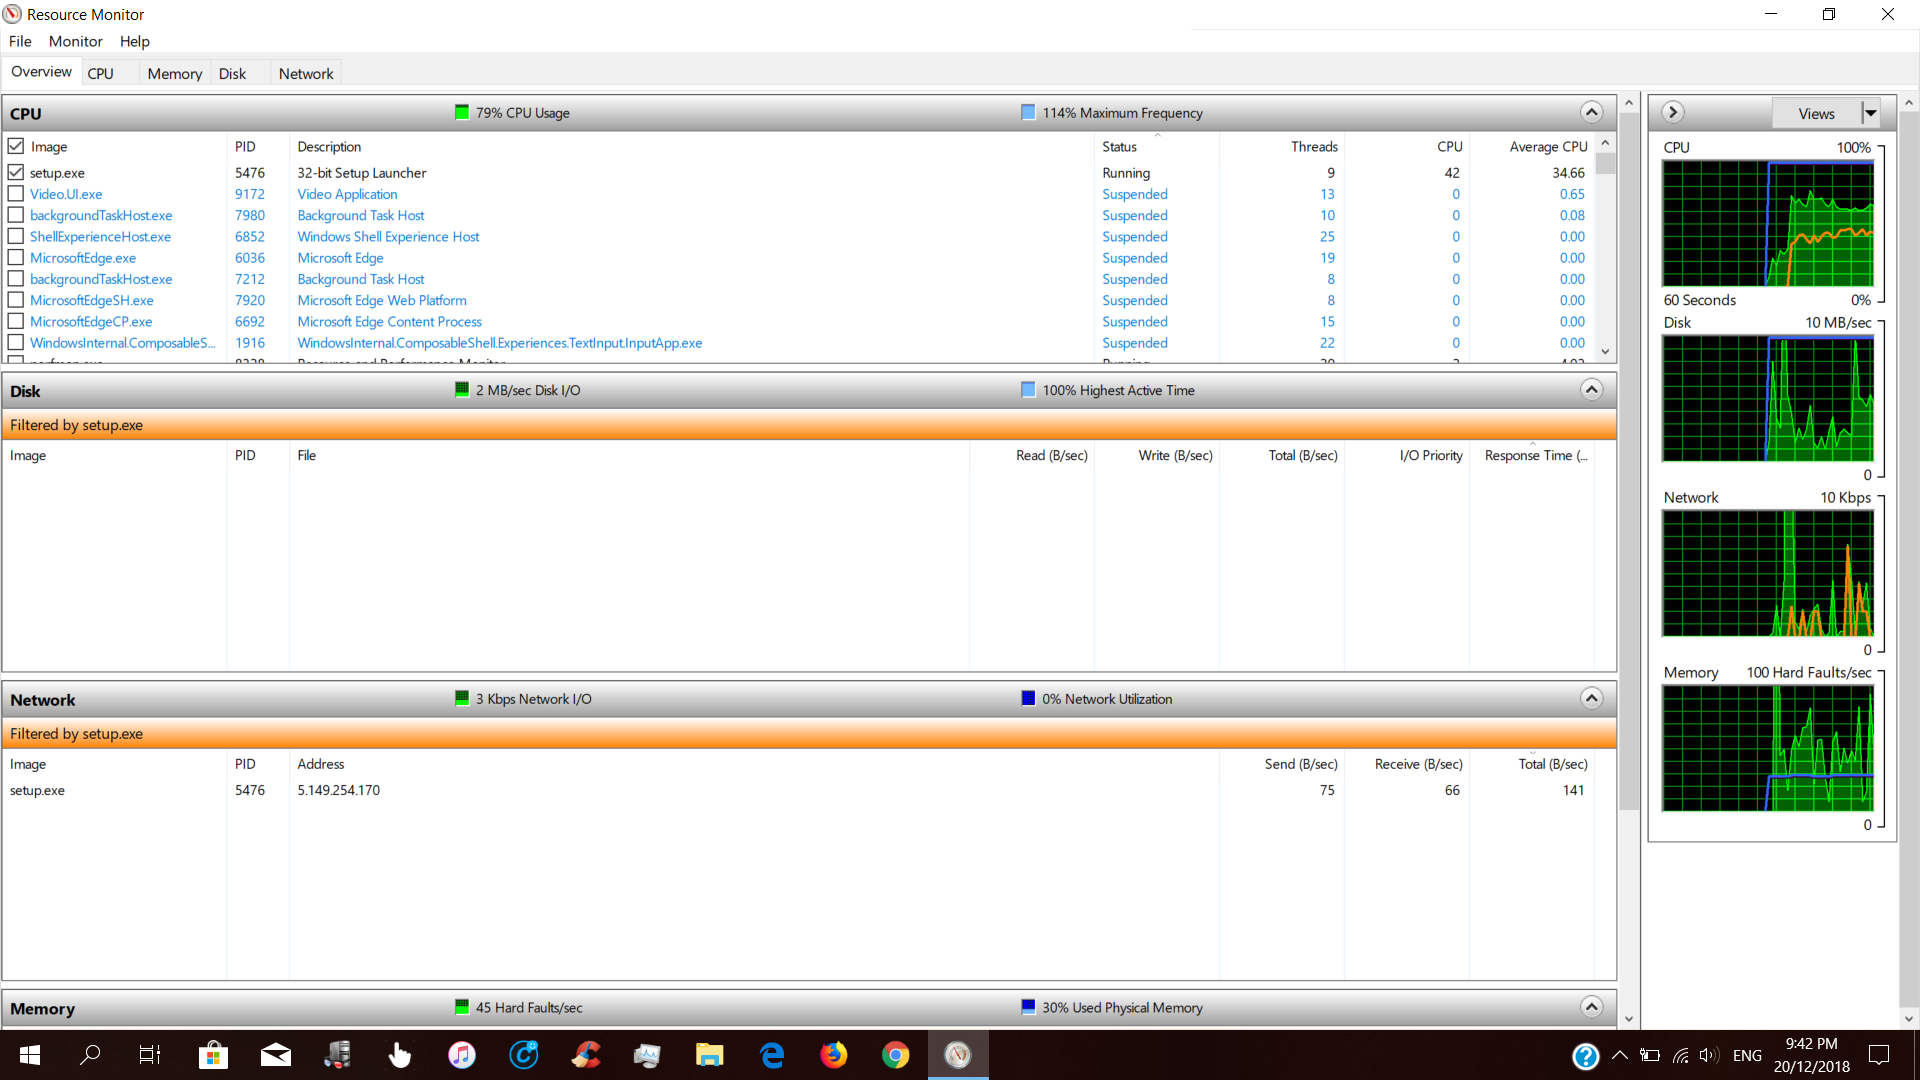 Cpu usage high until i open task manager and fan speed very high 04817a8c-49c5-4de2-a3ee-fd815a725844?upload=true.png